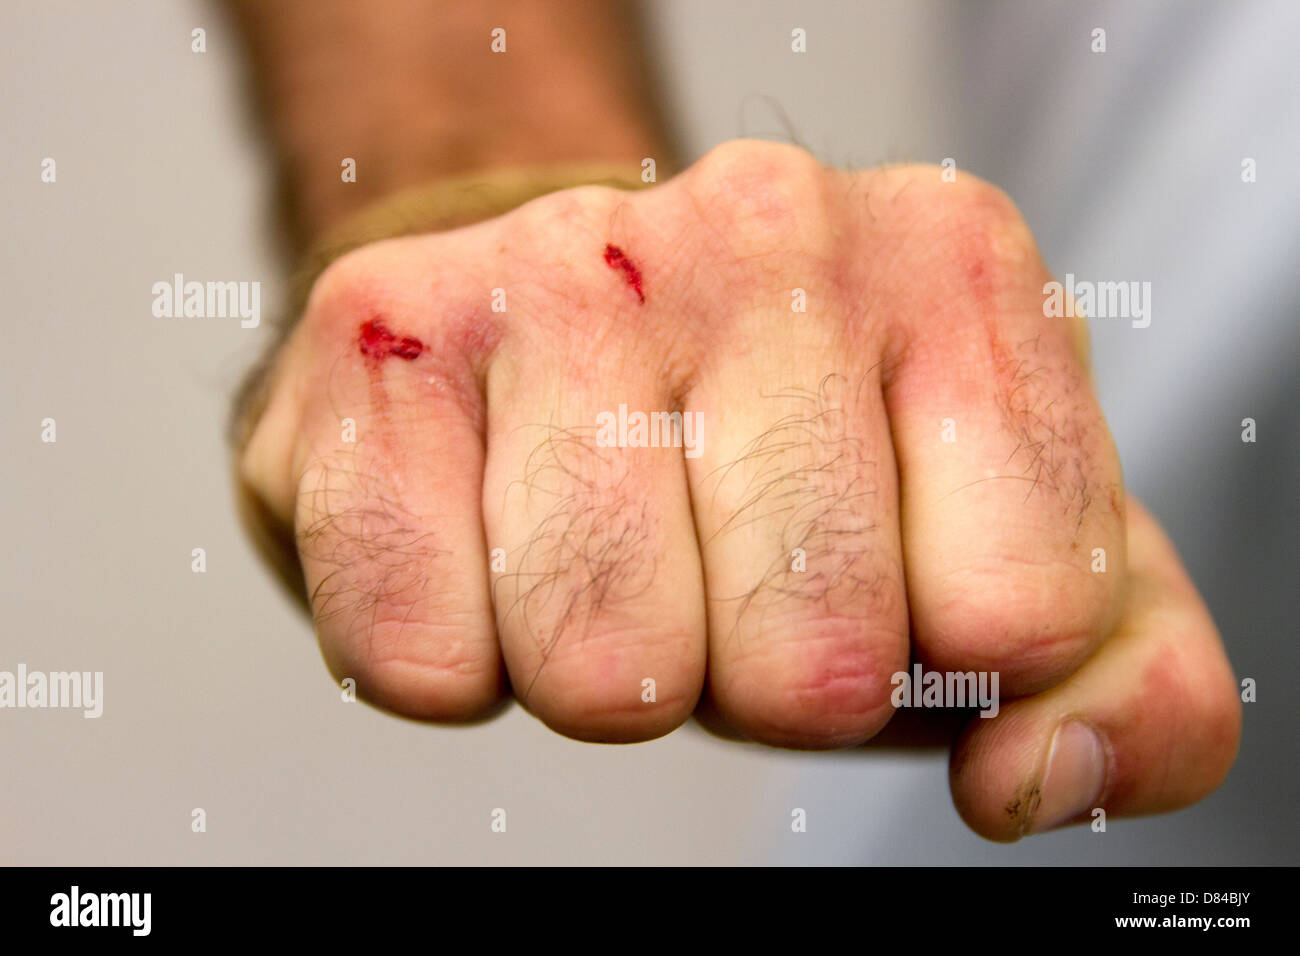 Bloody Knuckles - Stock Image